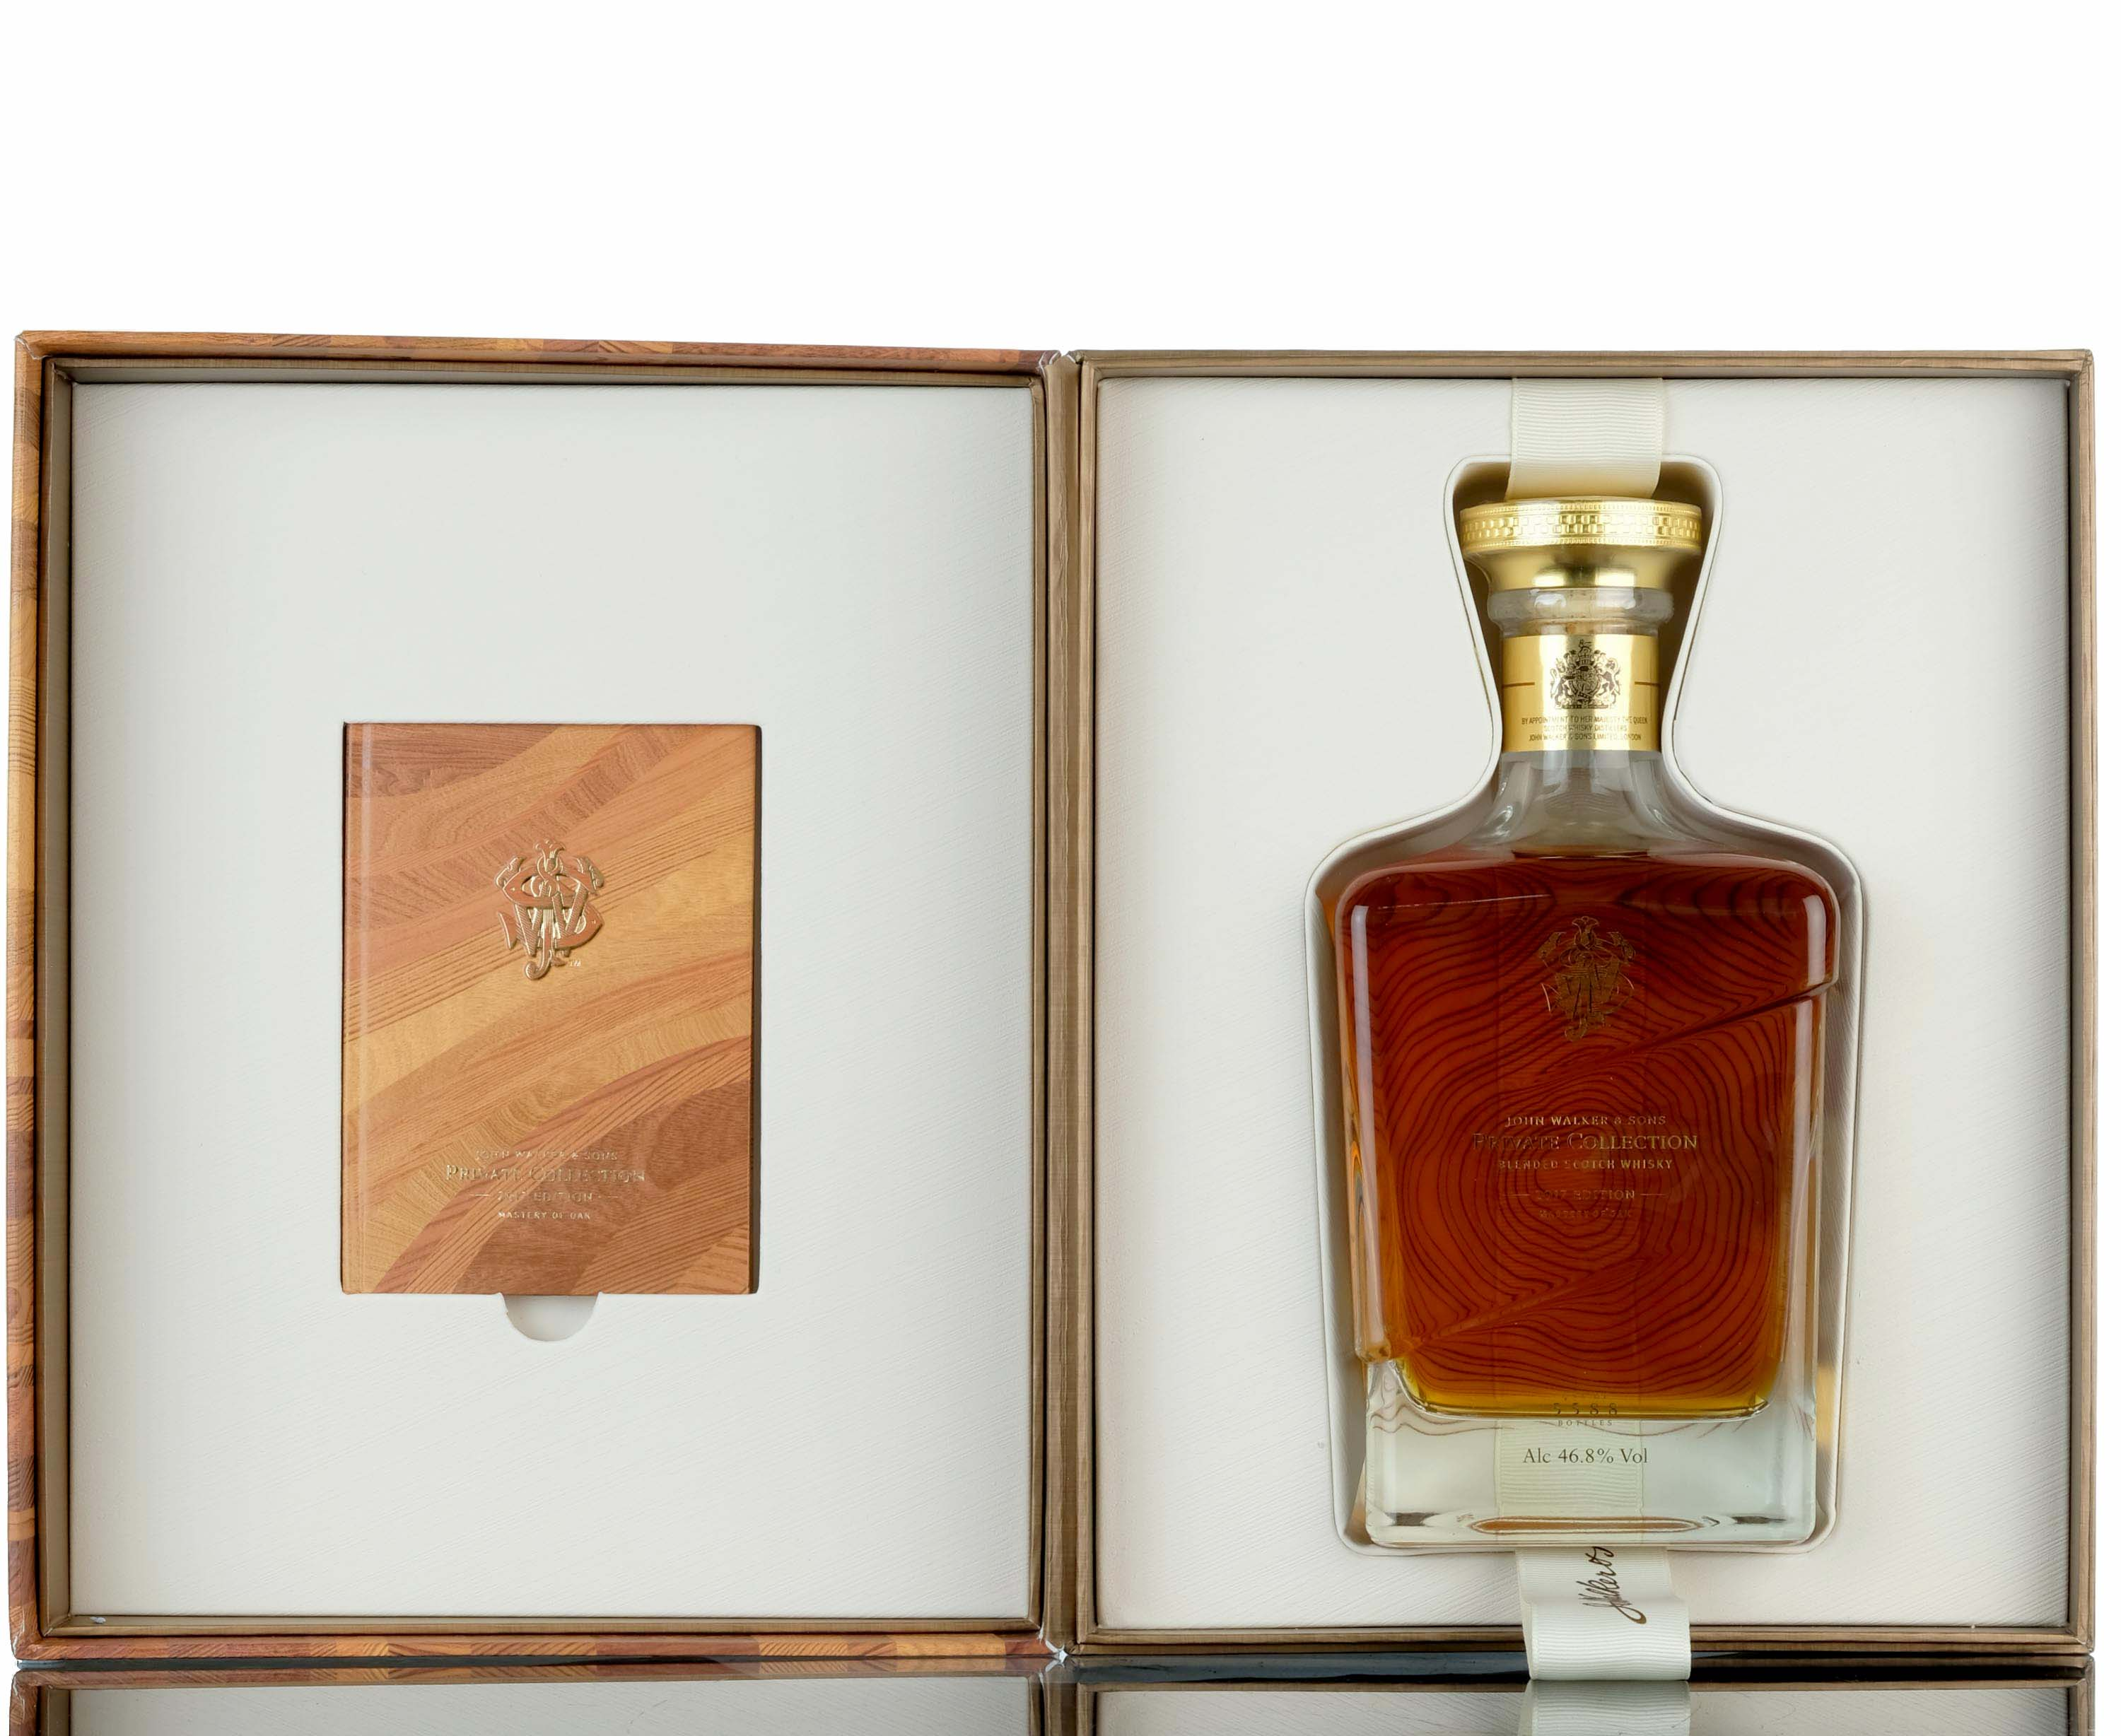 johnnie walker private collection 2017